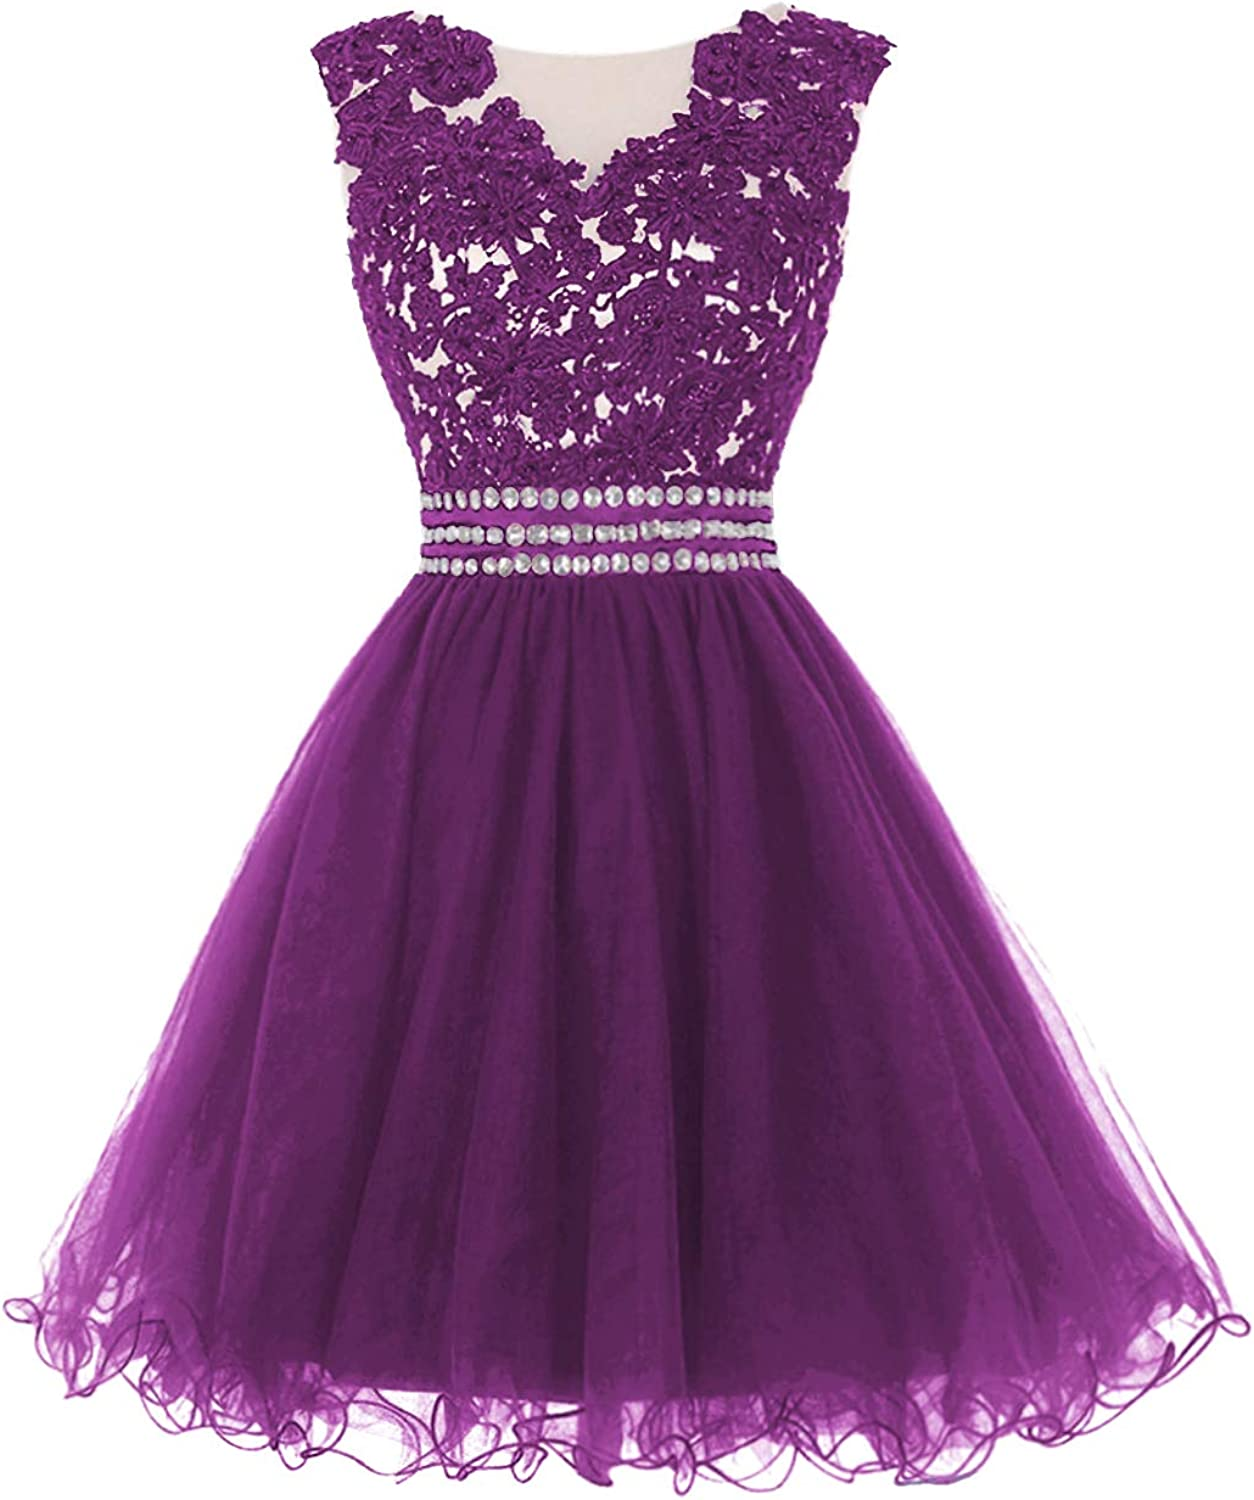 Prom Dress Short Tulle Party Dresses Lace Applique Cocktail Gowns Caystal Sash